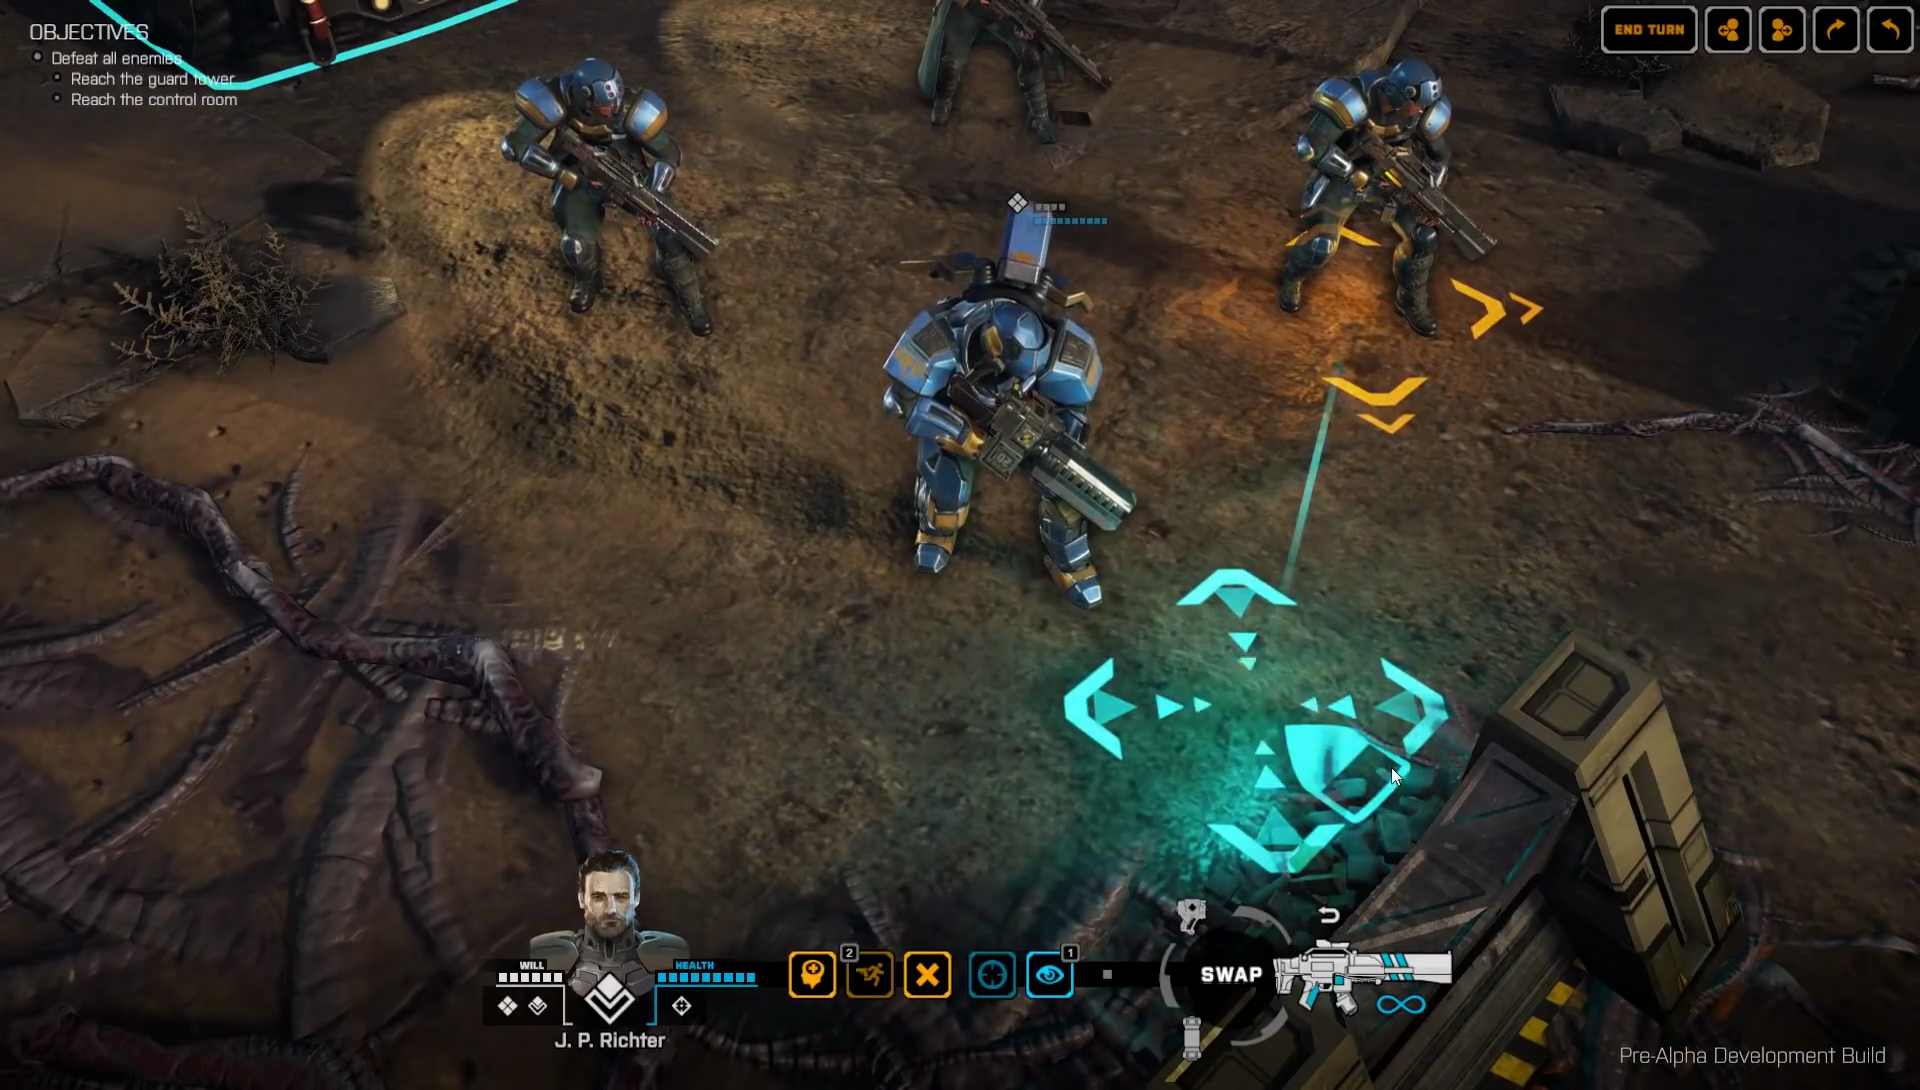 Grab The Games: Phoenix Point